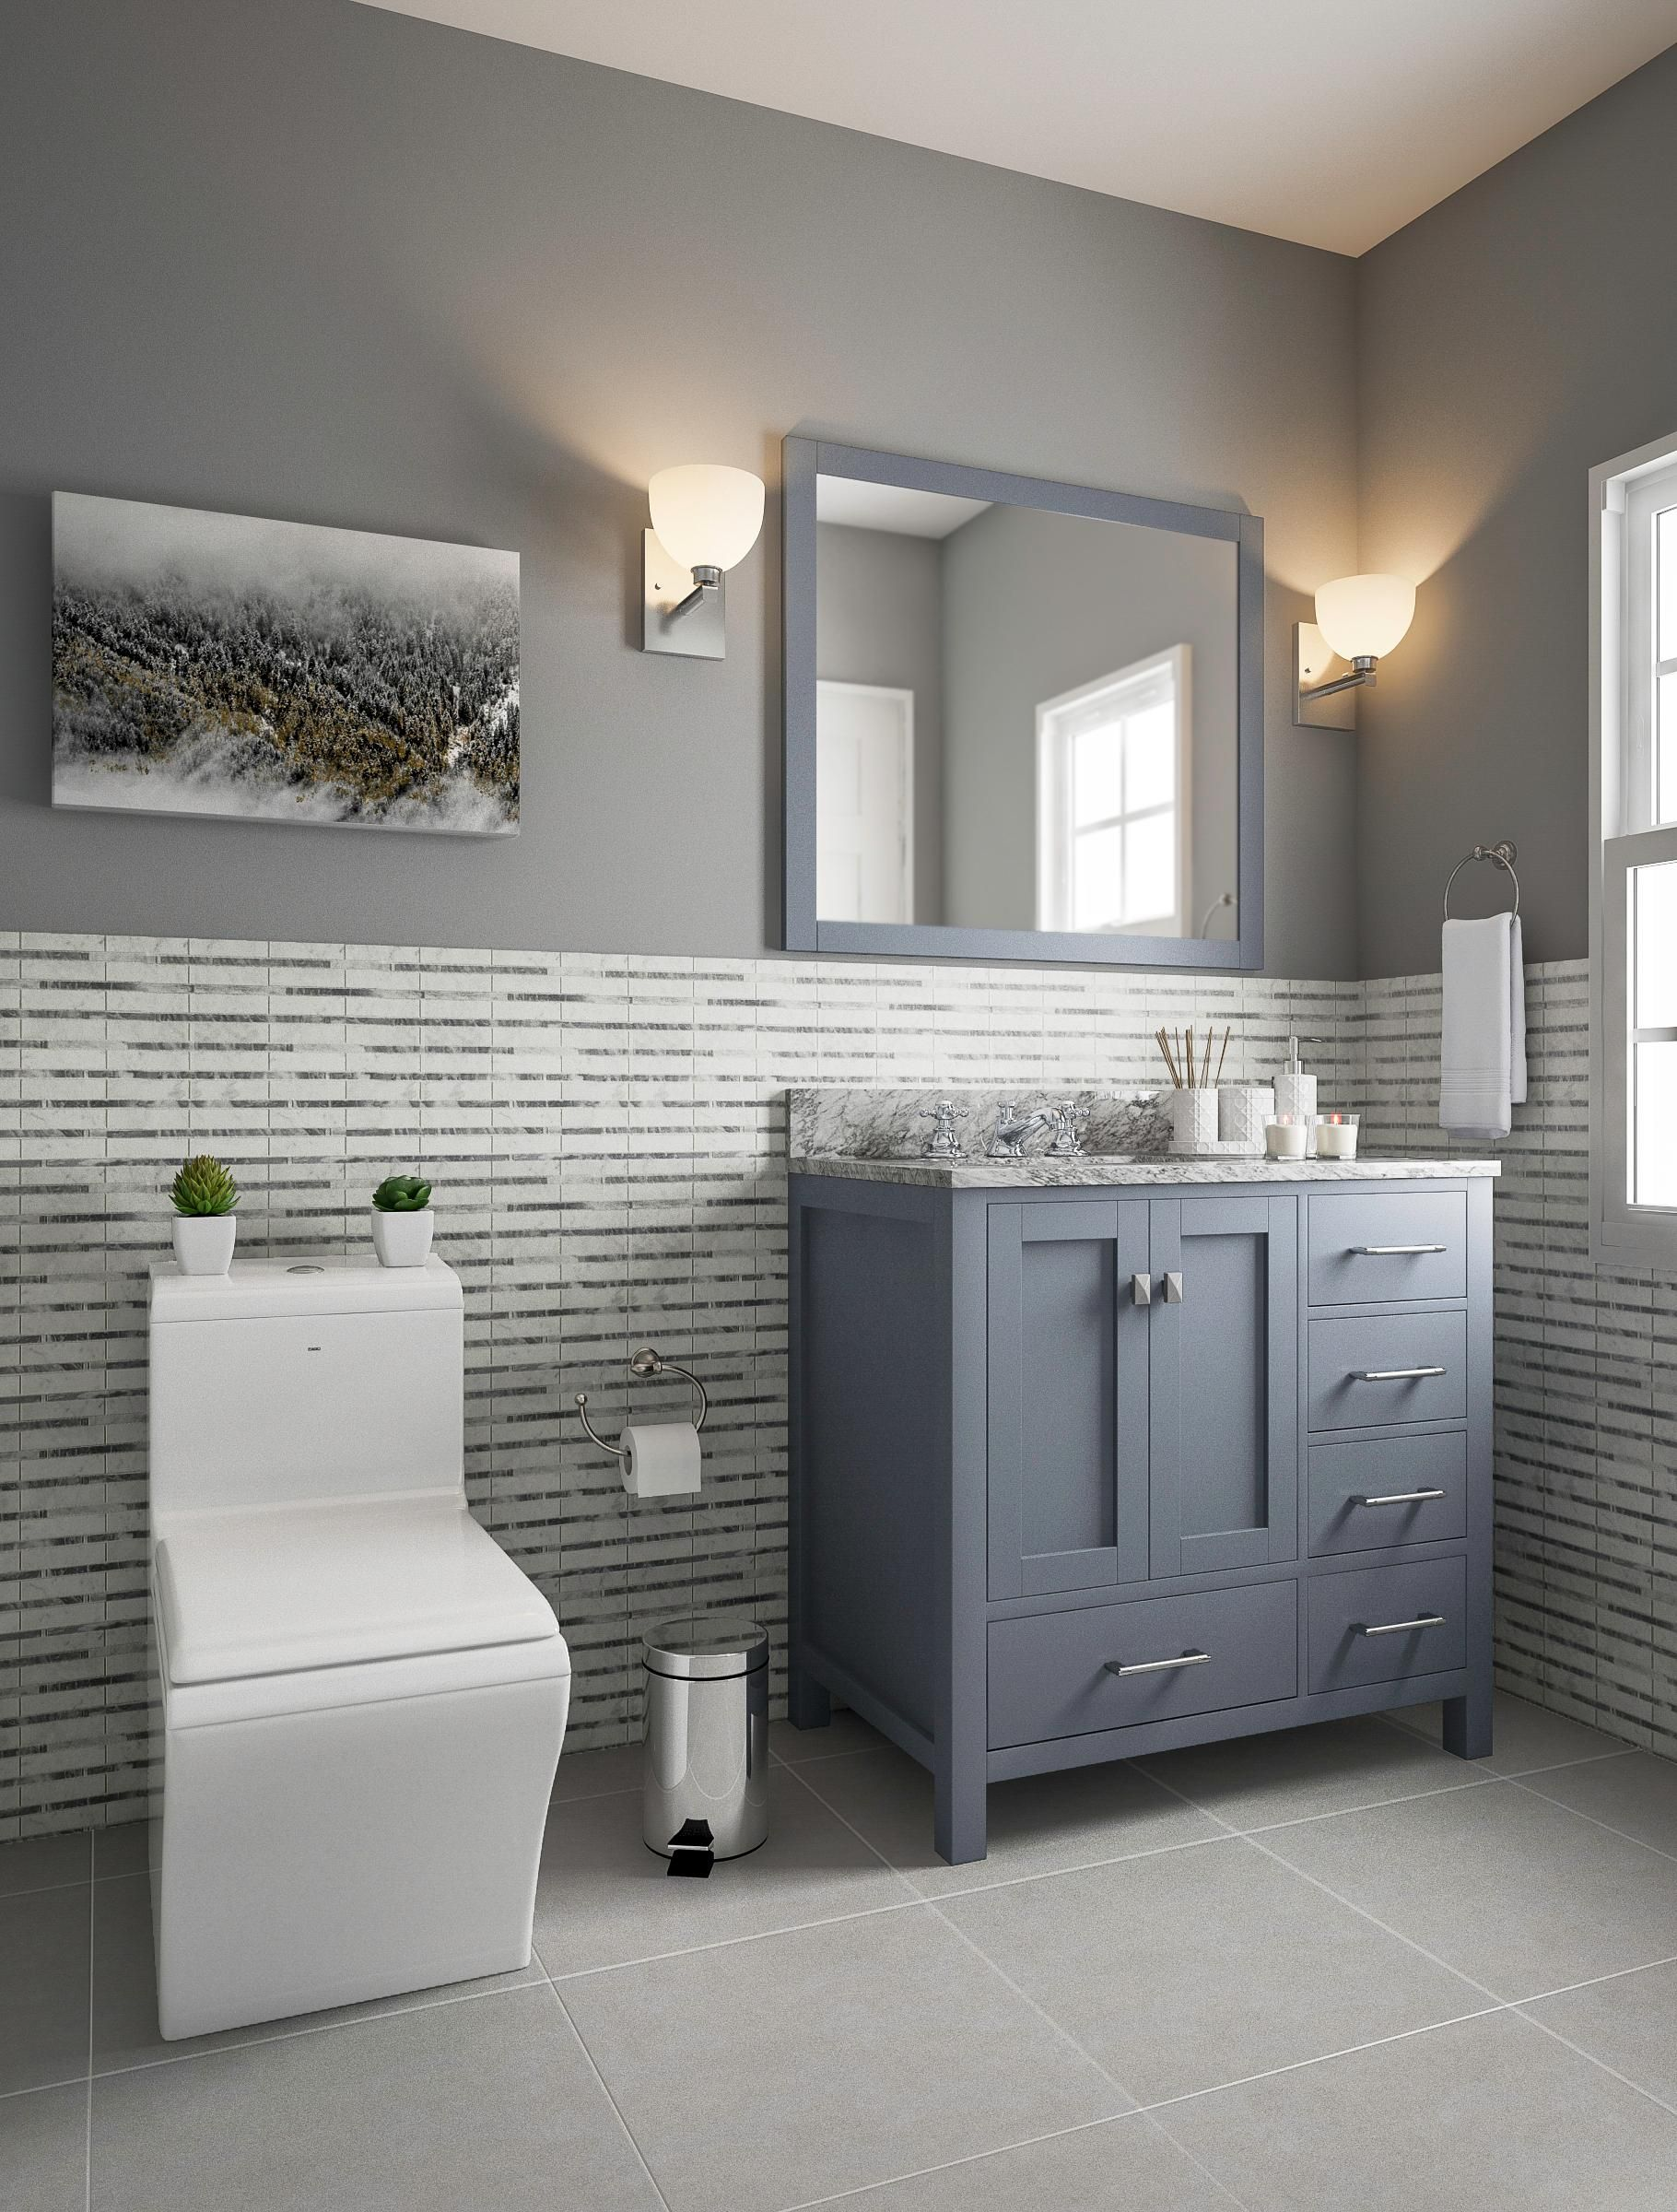 Gray And Blue Bathroom With Wainscoting Wainscoting Bathroom Grey Blue Bathroom Bathroom Design Small